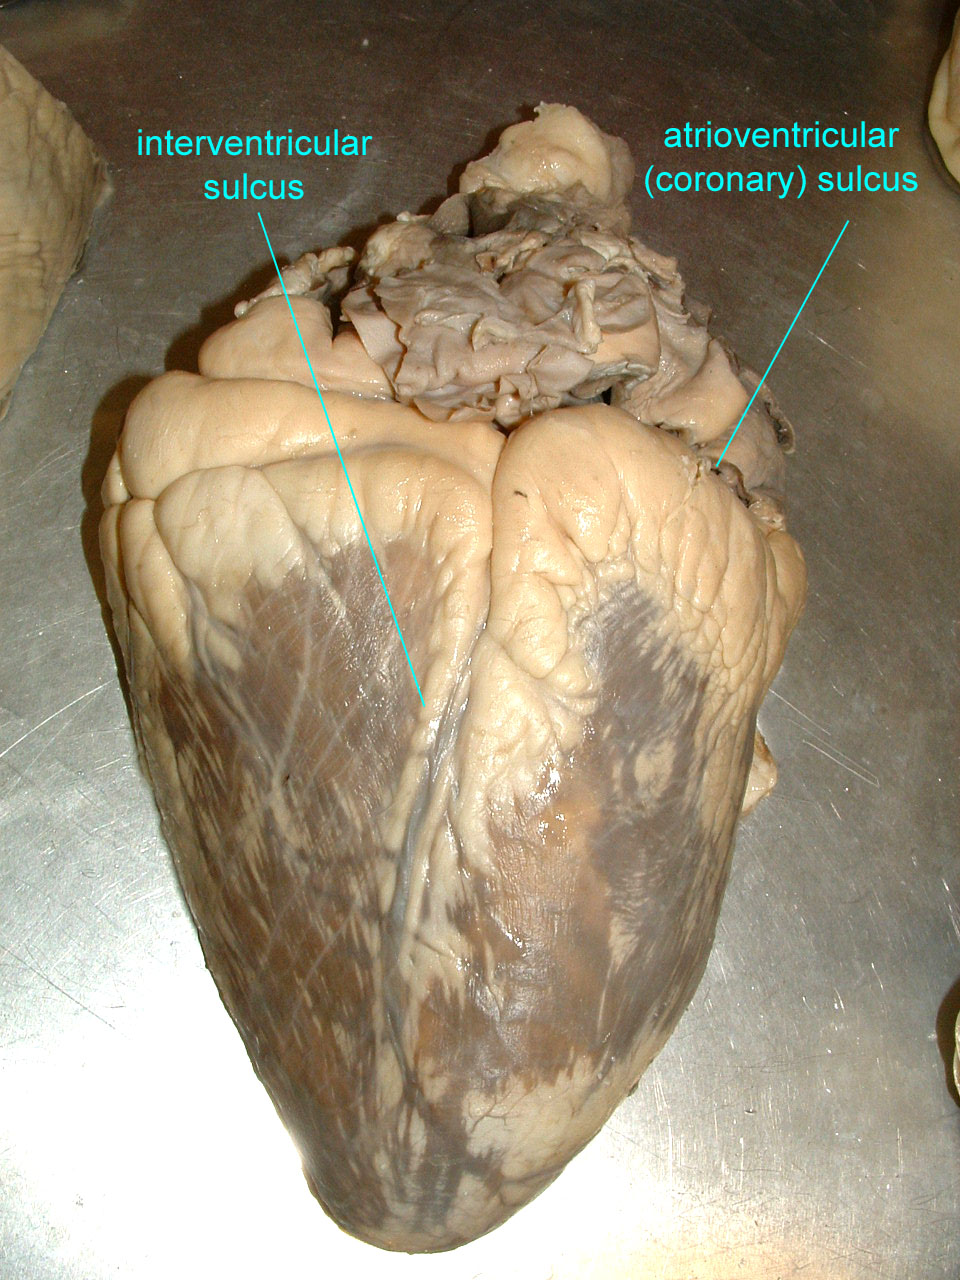 Cow heart anatomy